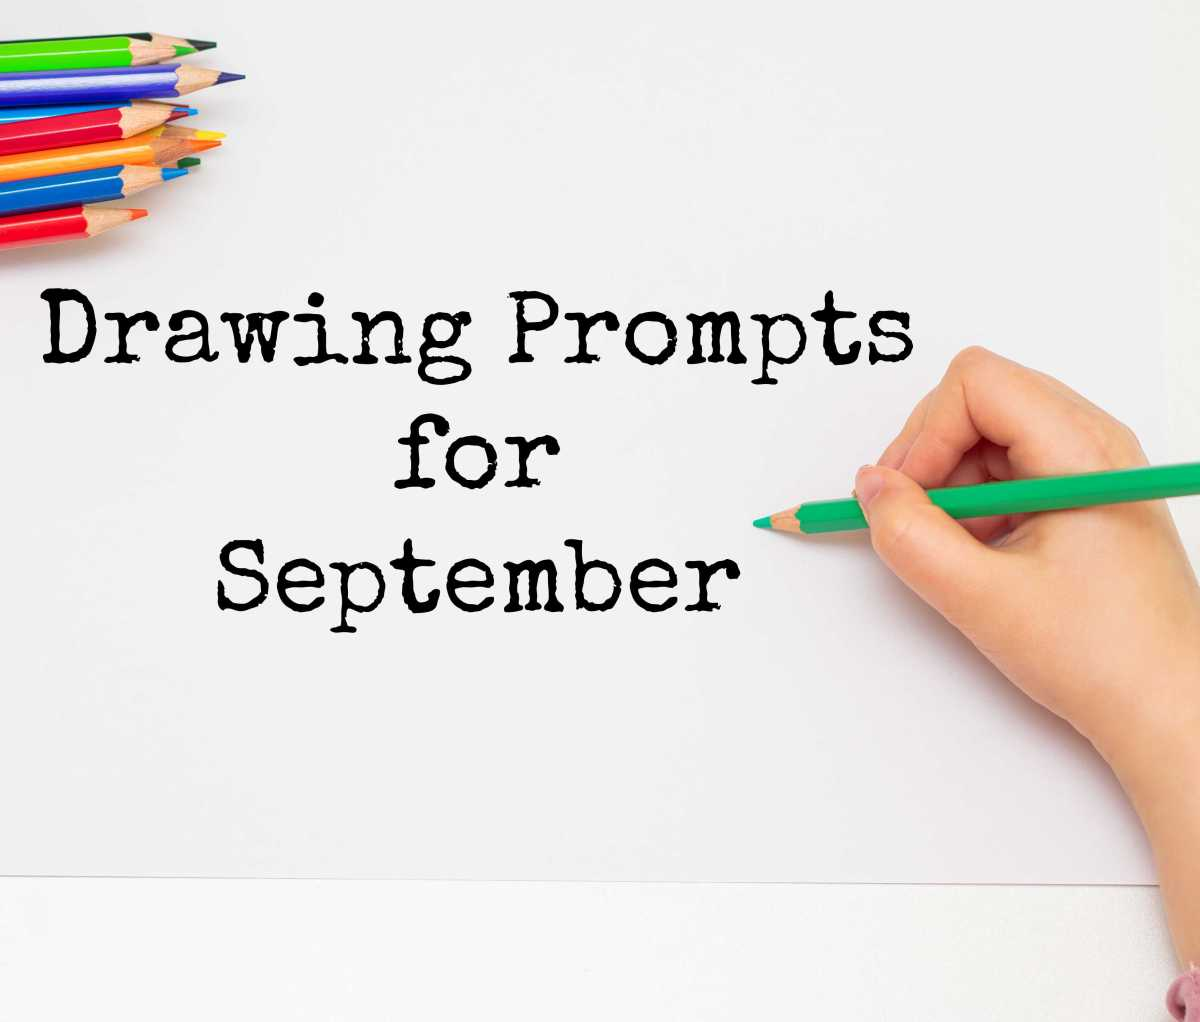 Drawing Prompts forSeptember